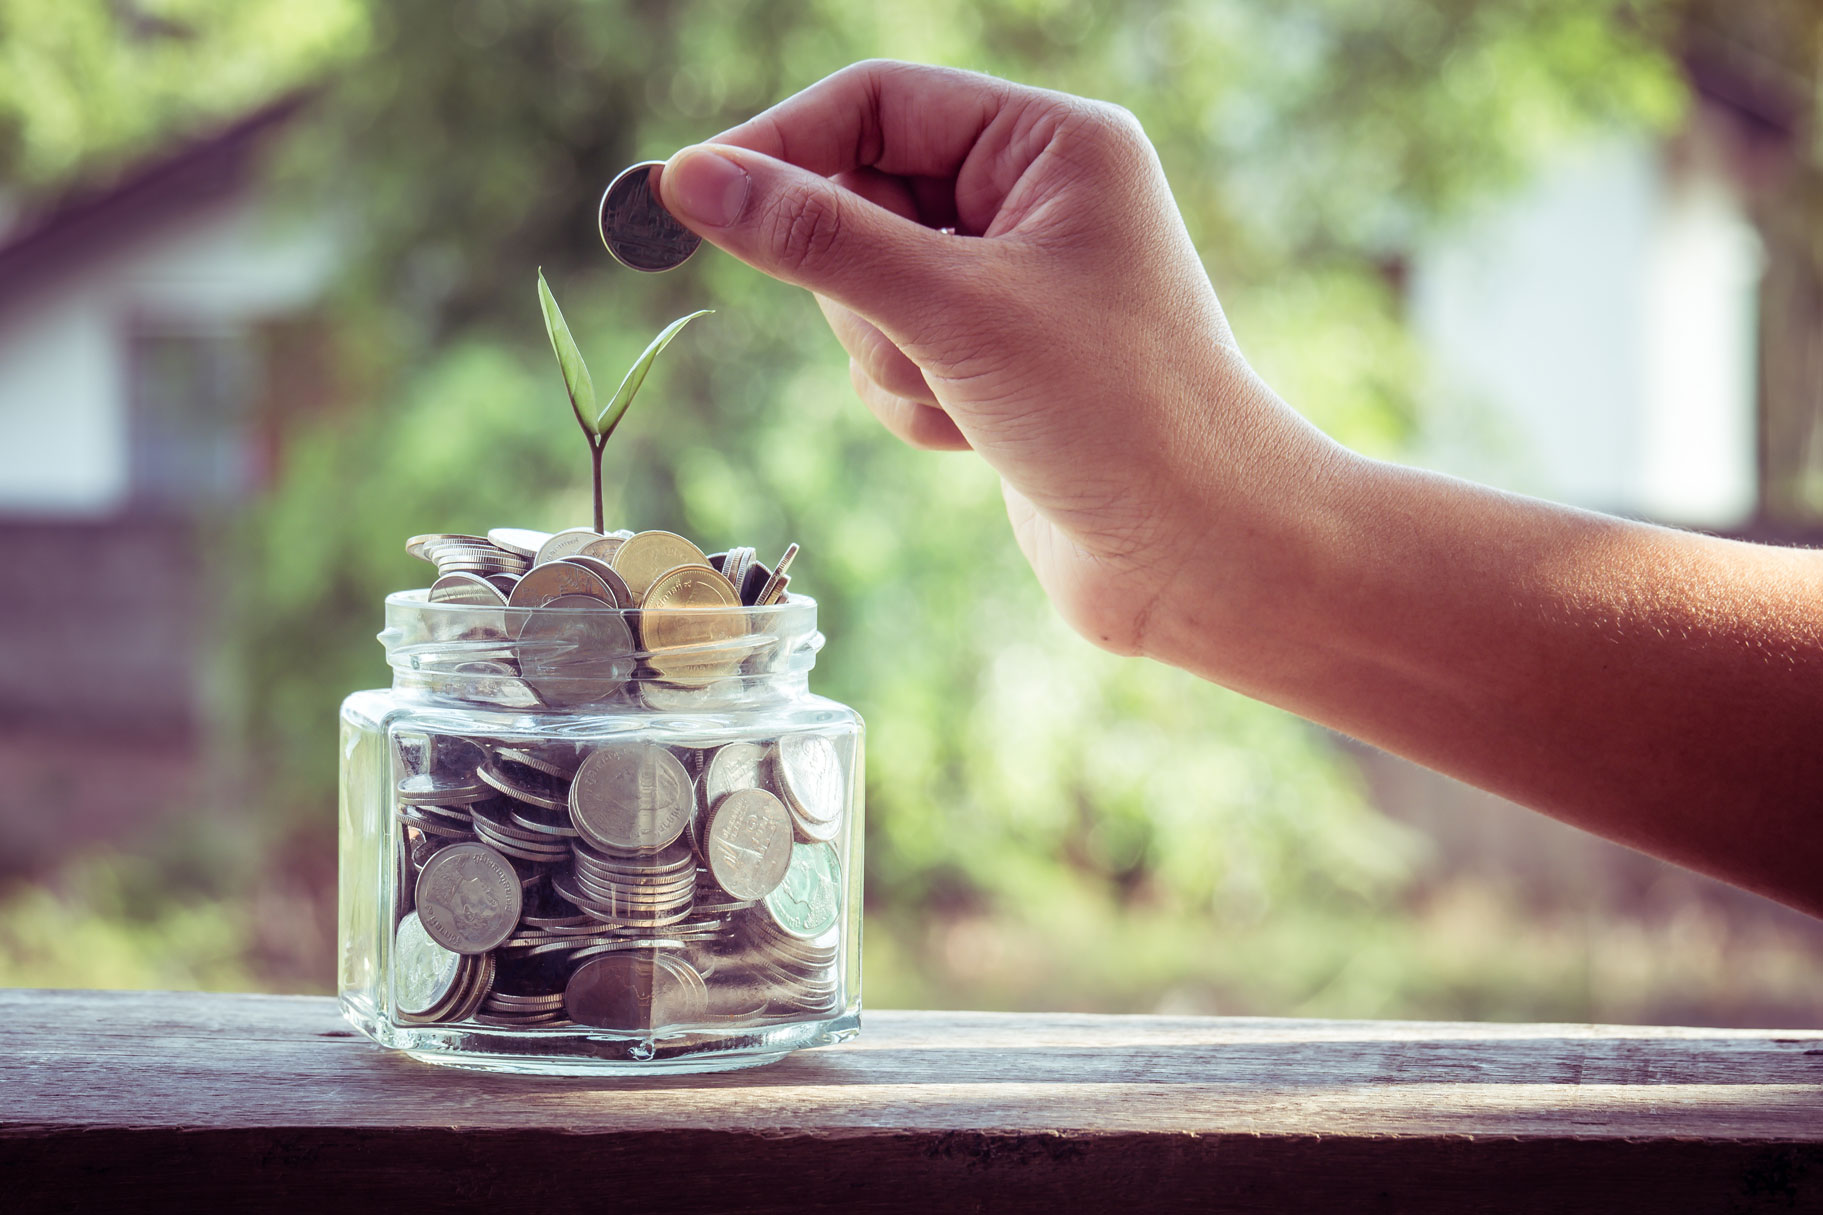 is-it-worth-it-to-go-solar-pic is a hand putting a dime in a jar full of coins with a leaf growing from the jar